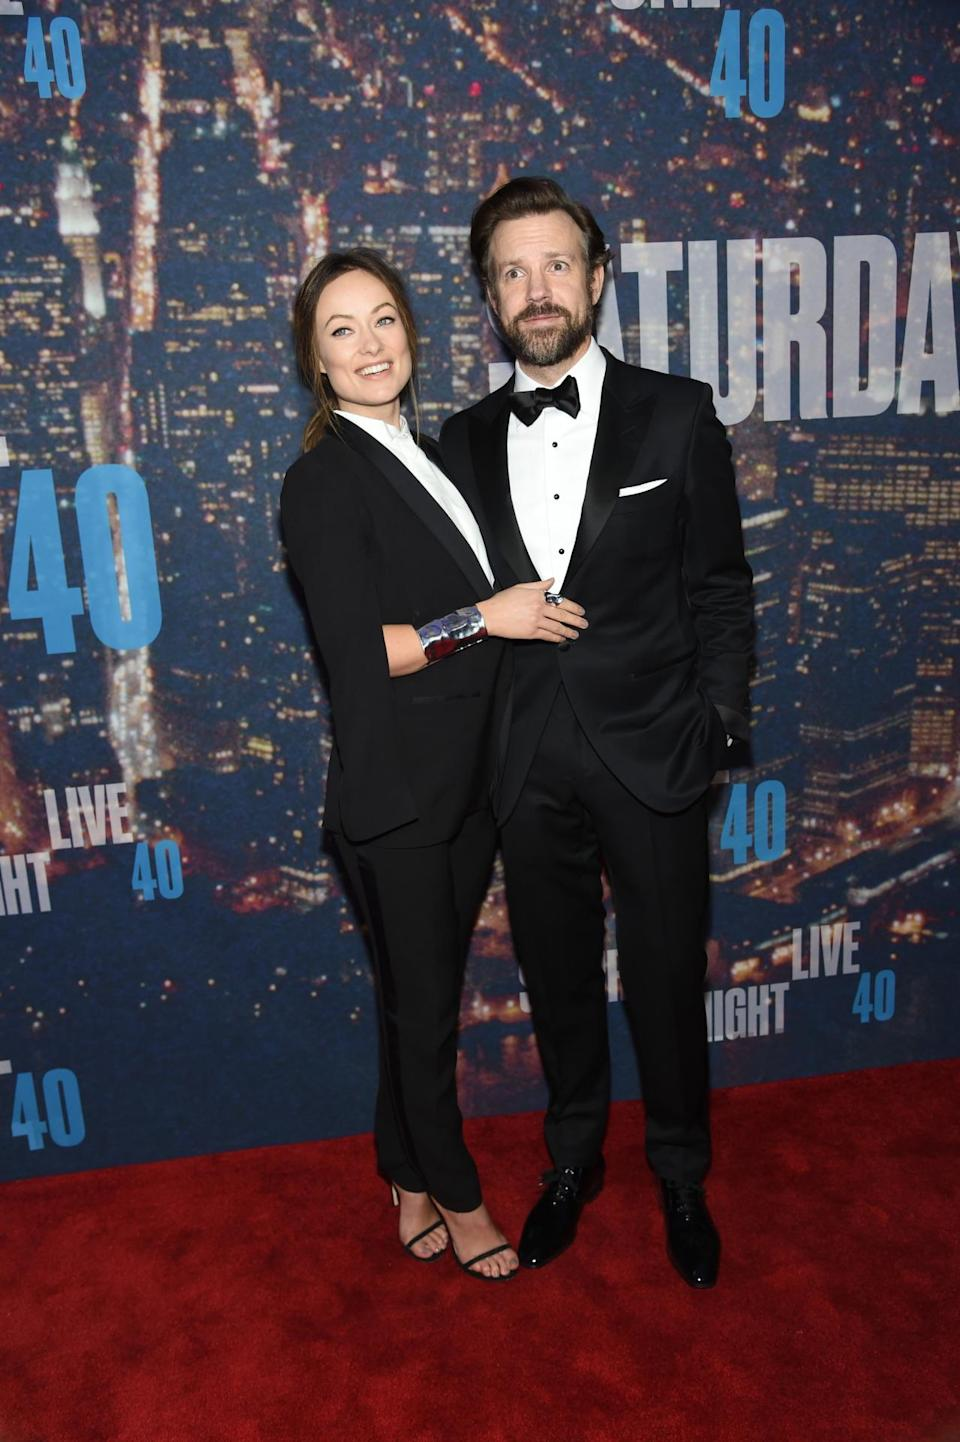 Olivia Wilde, wearing an H&M Conscious Commerce Collection suit, matches her husband, Jason Sudeikis. The couple that dresses together, stays together…